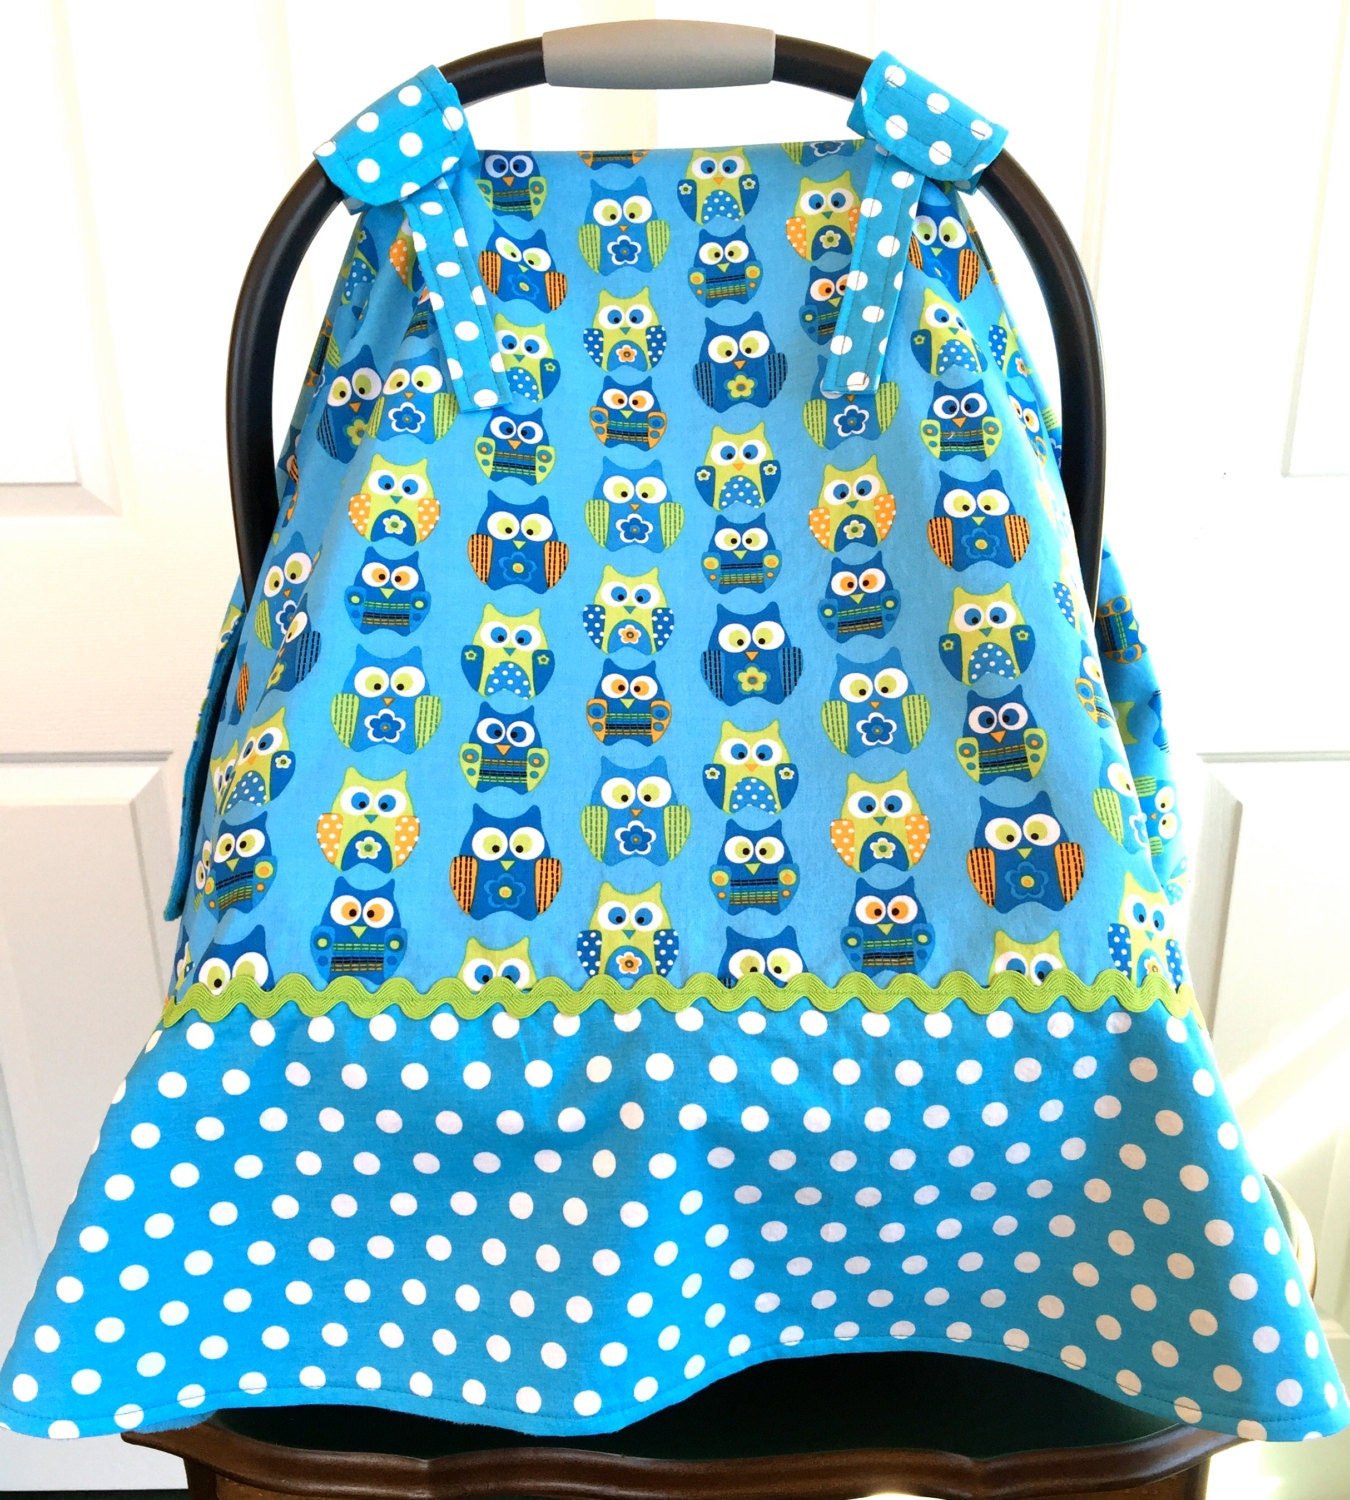 baby boy car seat cover owls blue minky by sweetpeaaprons on etsy. Black Bedroom Furniture Sets. Home Design Ideas